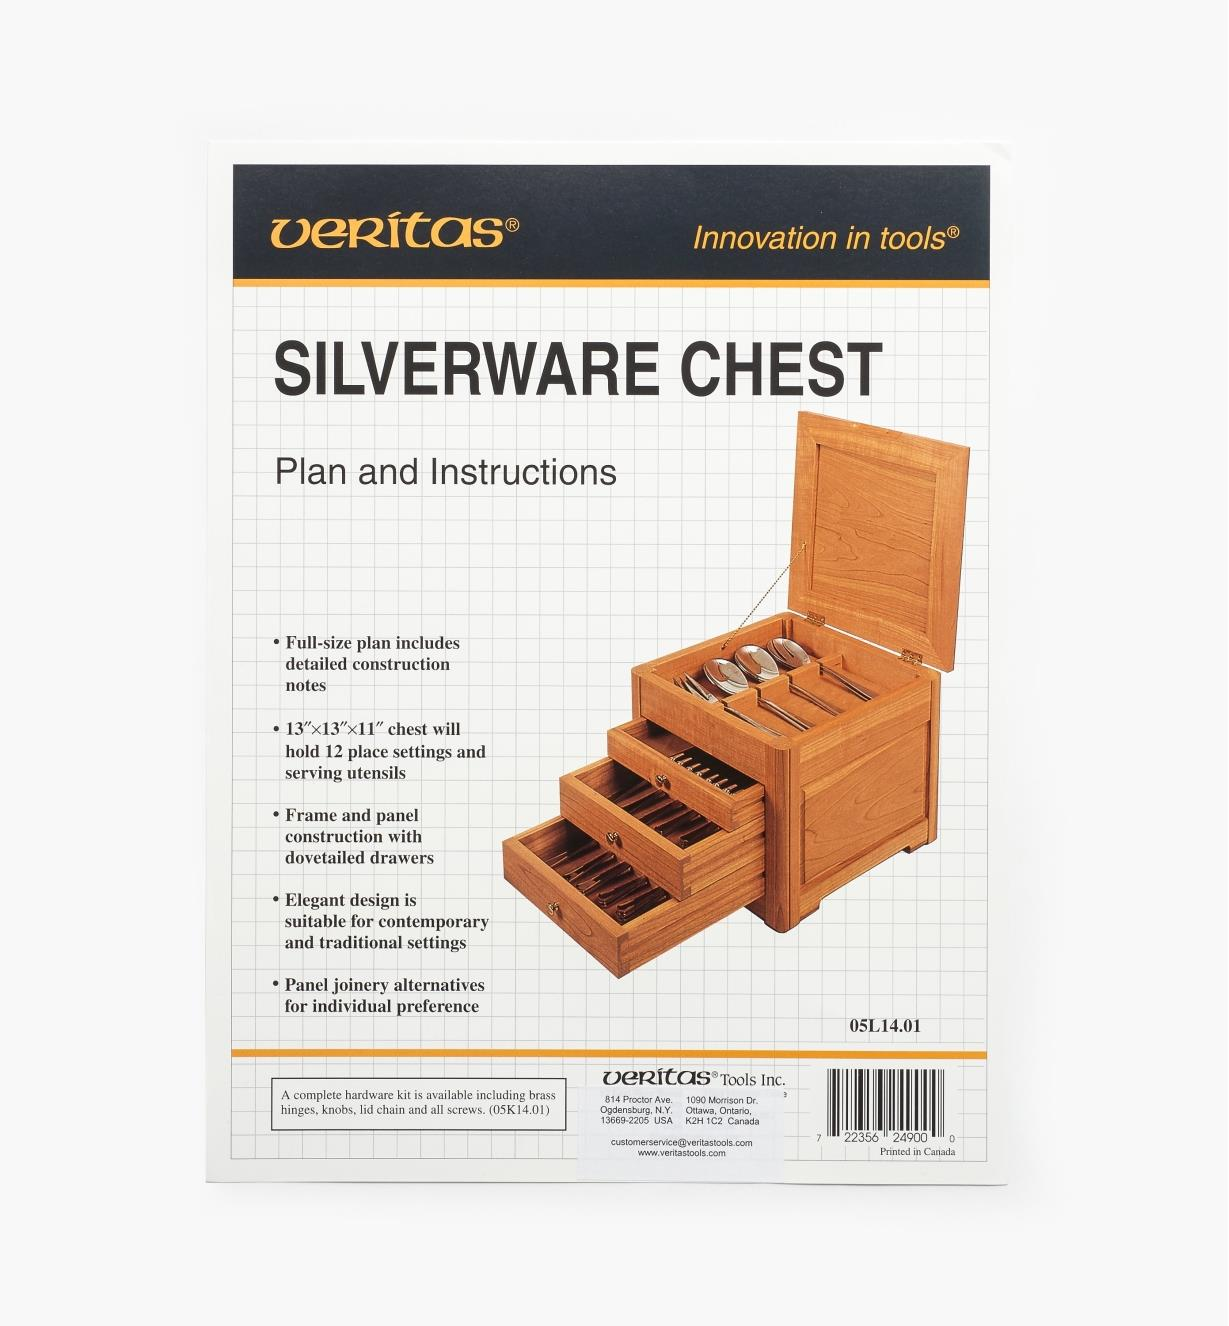 05L1401 - Silverware Chest Plan